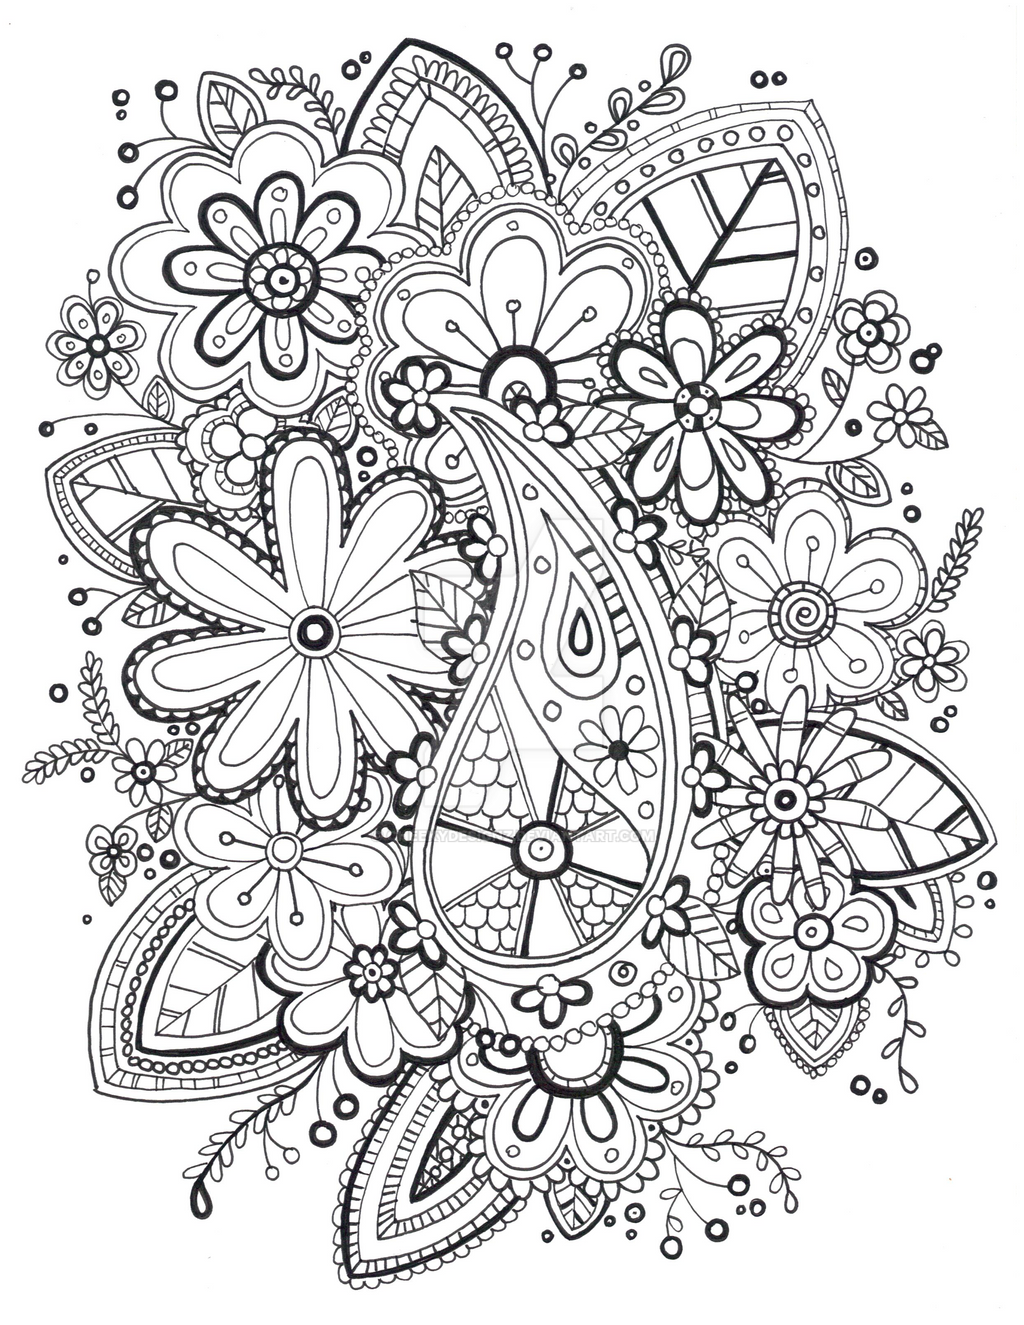 zentangle coloring page by cheekydesignz zentangle coloring page by cheekydesignz - Zentangle Coloring Book